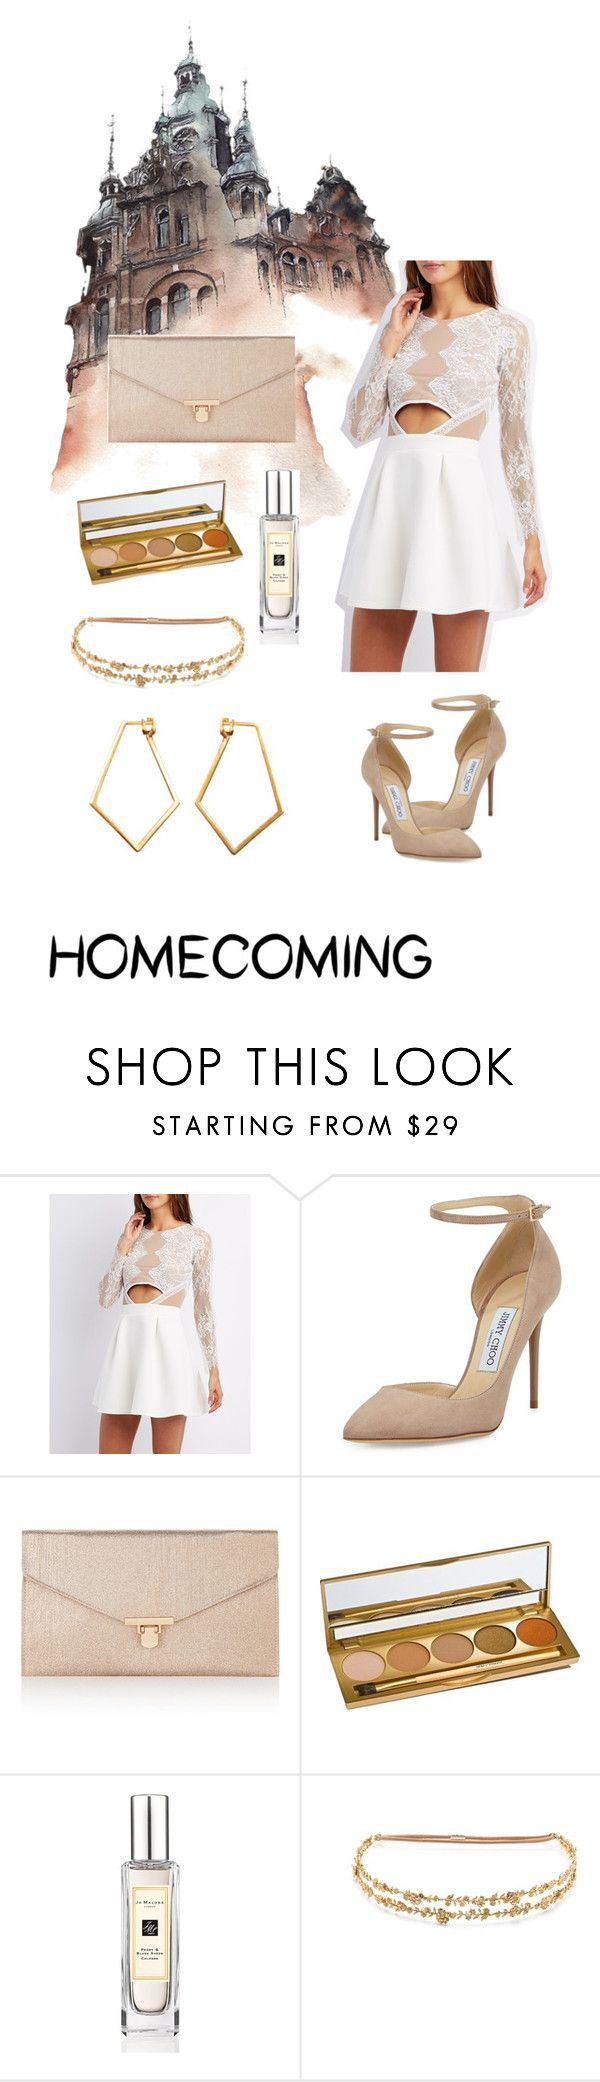 """""""Homecoming 🔆"""" by stella-lam ❤ liked on Polyvore featuring Charlotte Russe, Jimmy Choo, Accessorize, Jane Iredale, Jo Malone, J.Crew, Dutch Basics and Homecoming"""